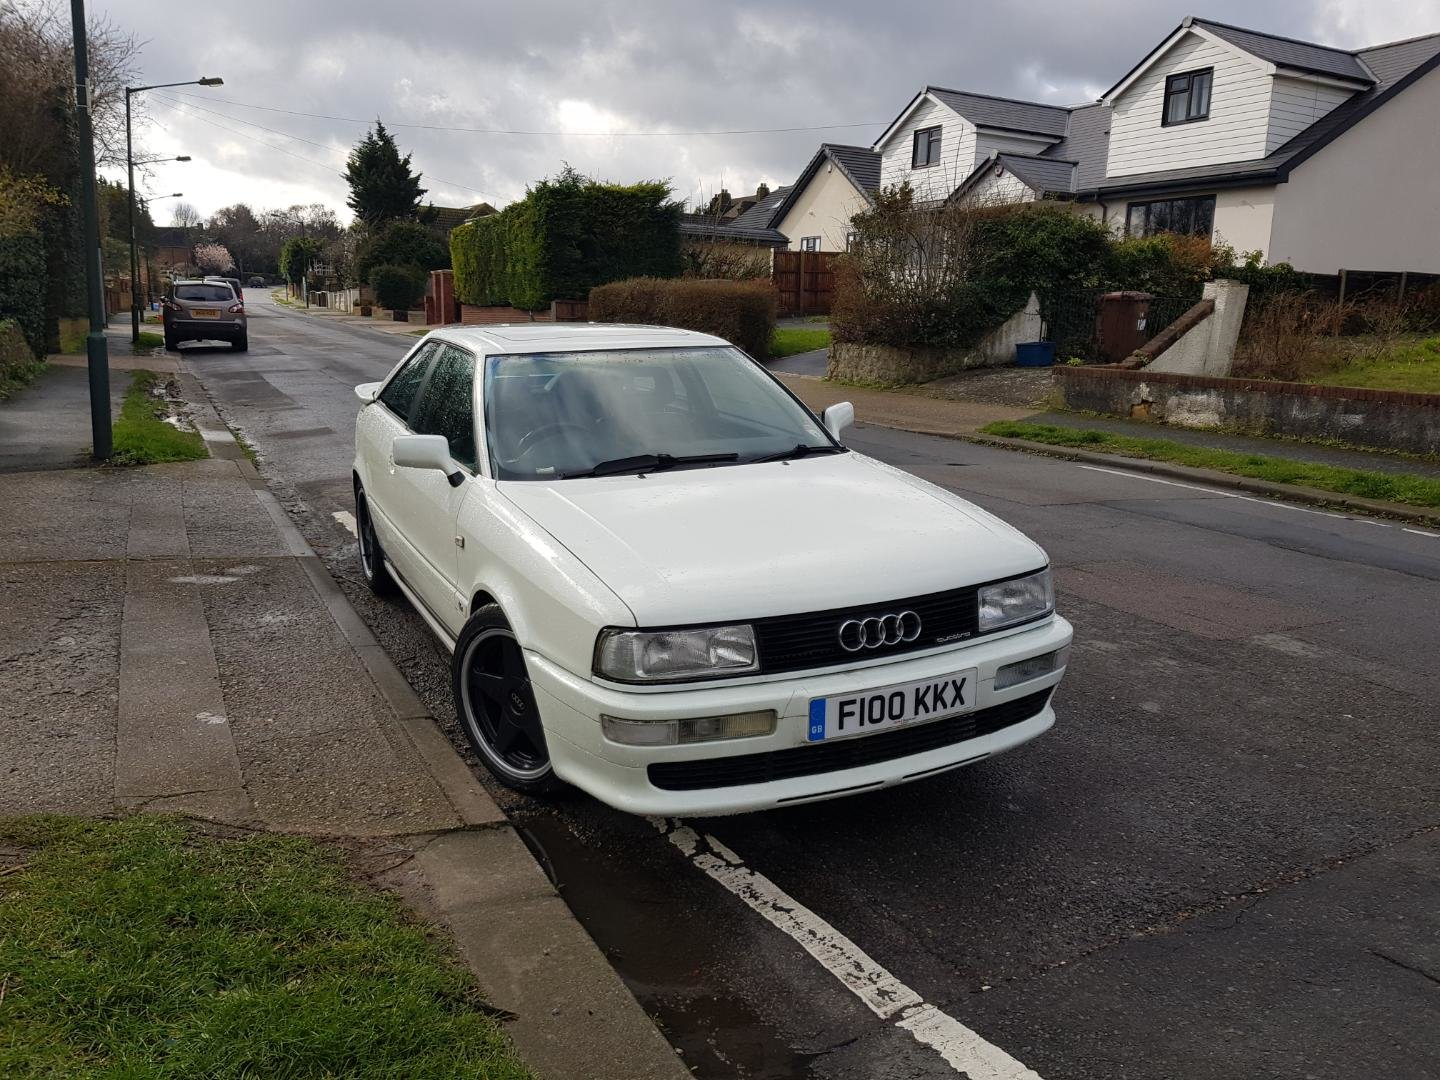 1988 Audi Coupe Quattro for auction 29th-30th October SOLD ...